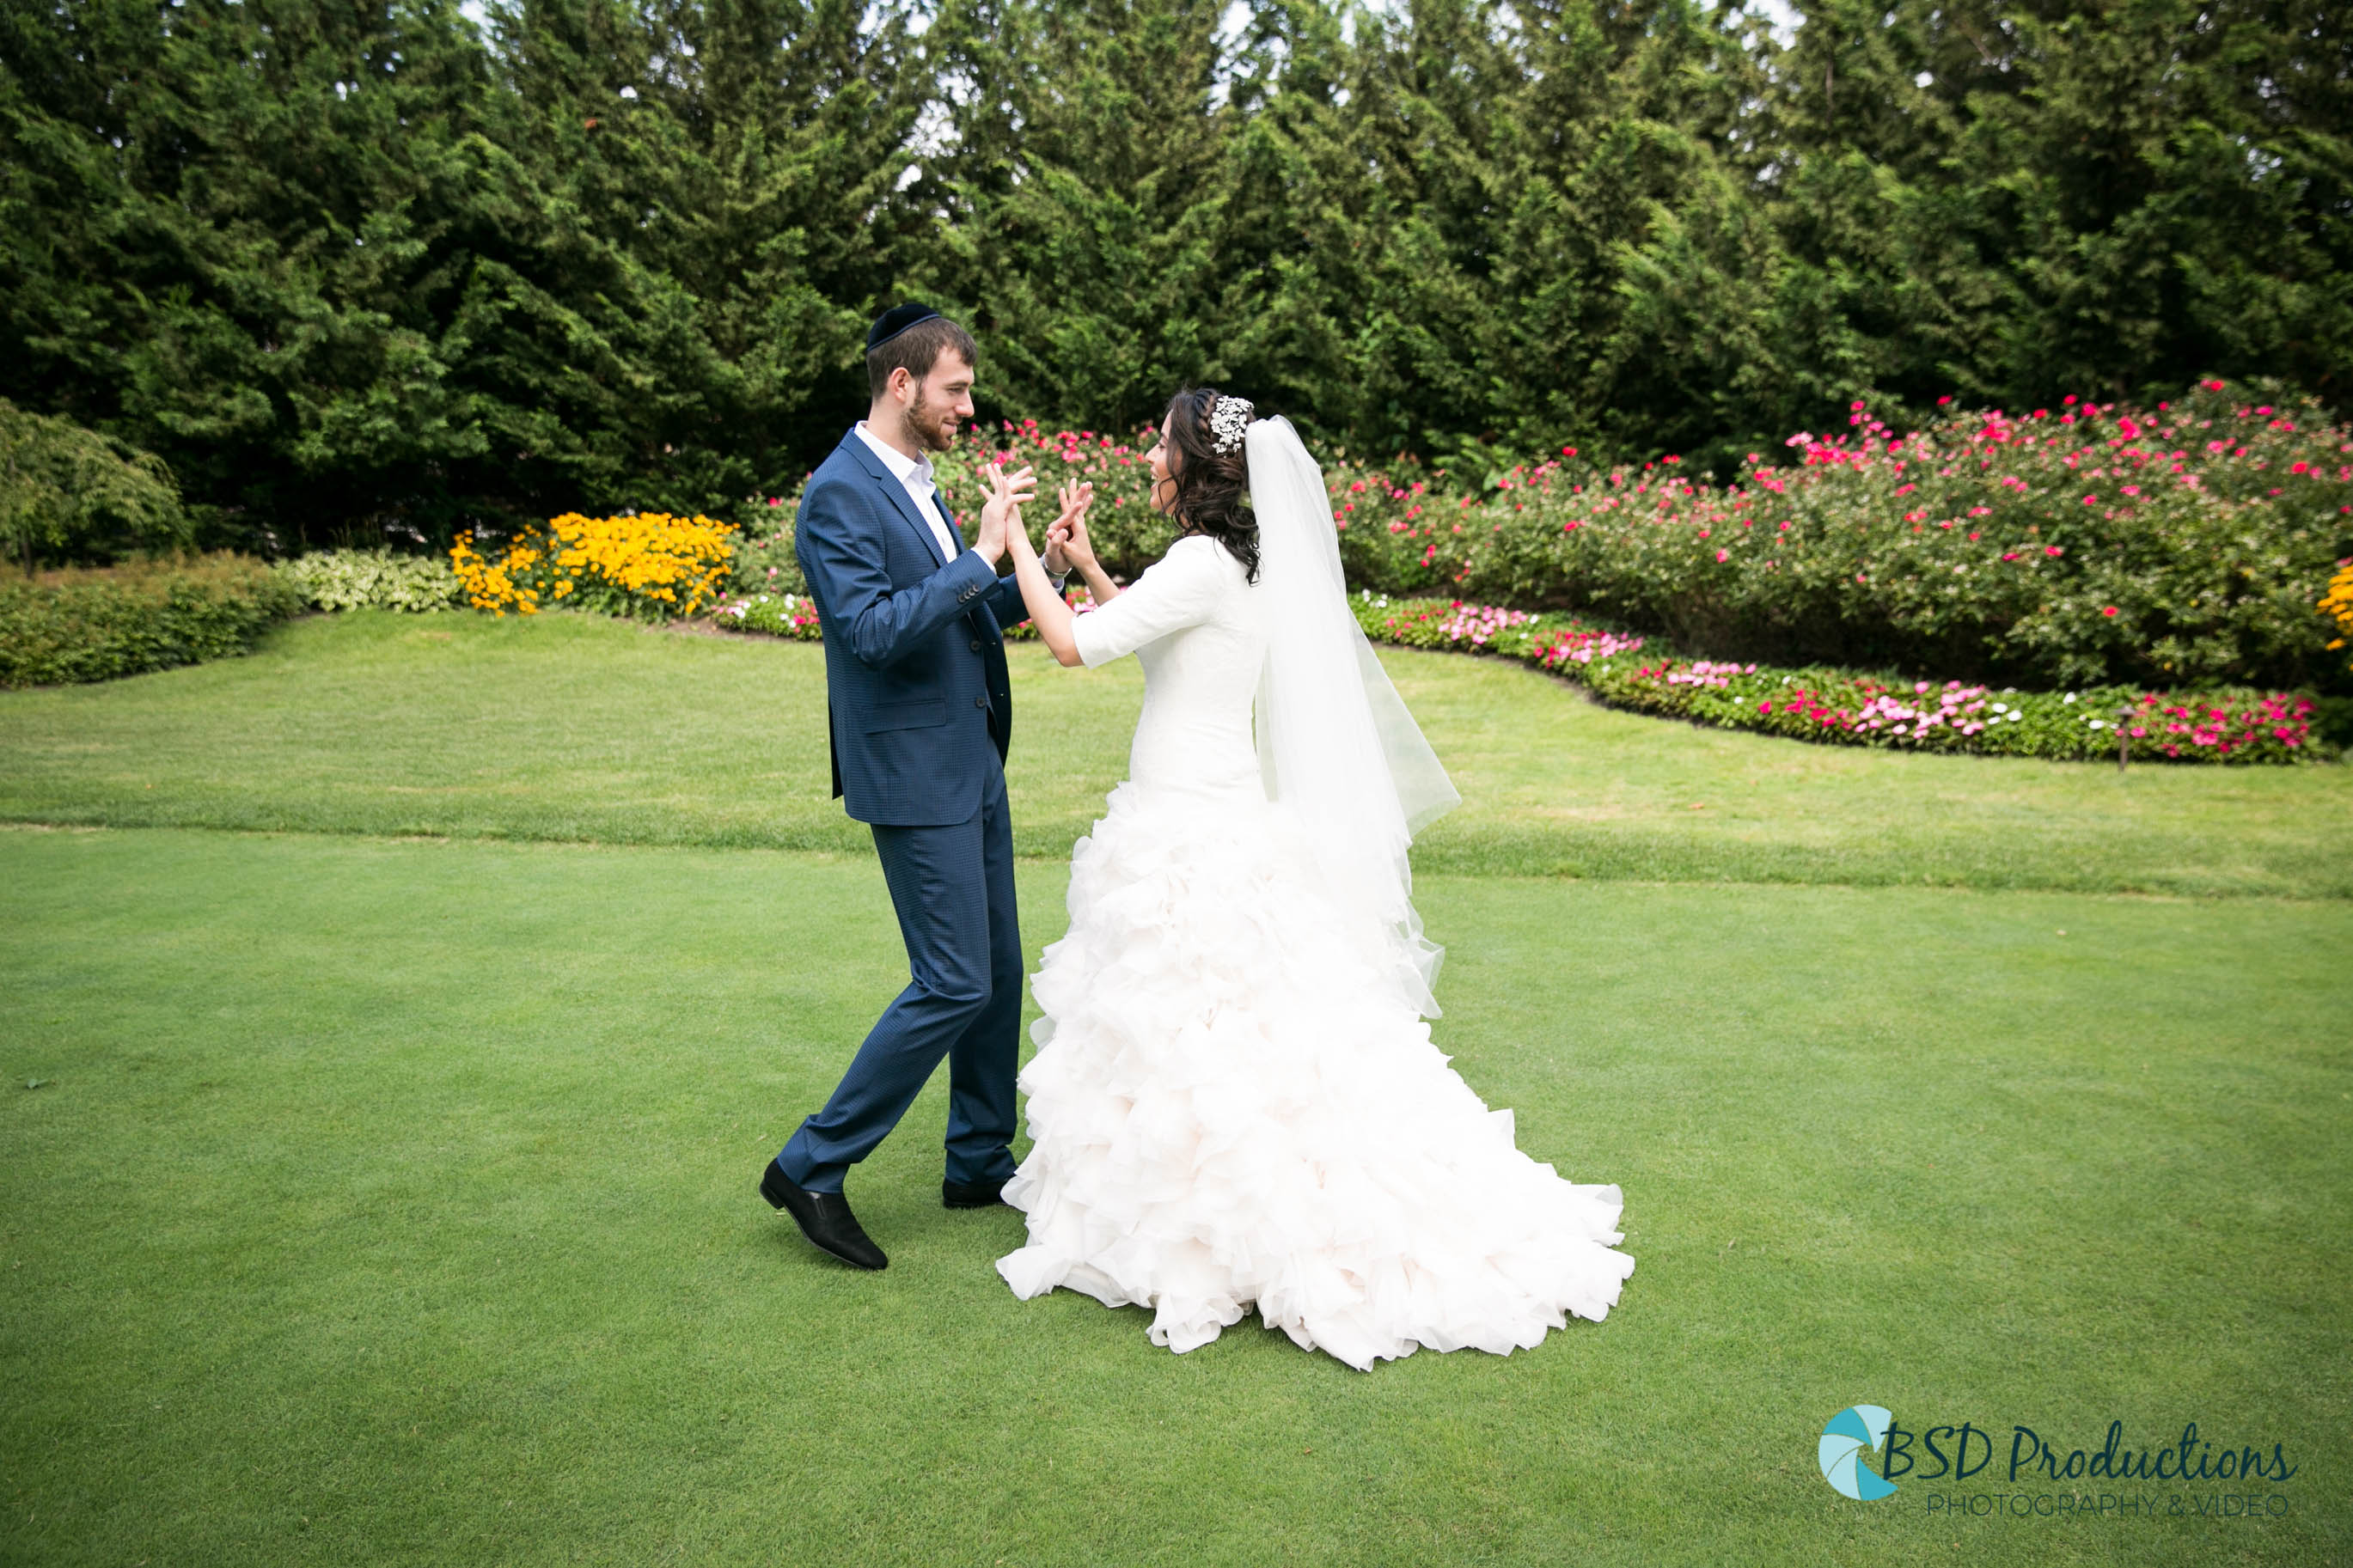 UH5A2617 Wedding – BSD Productions Photography